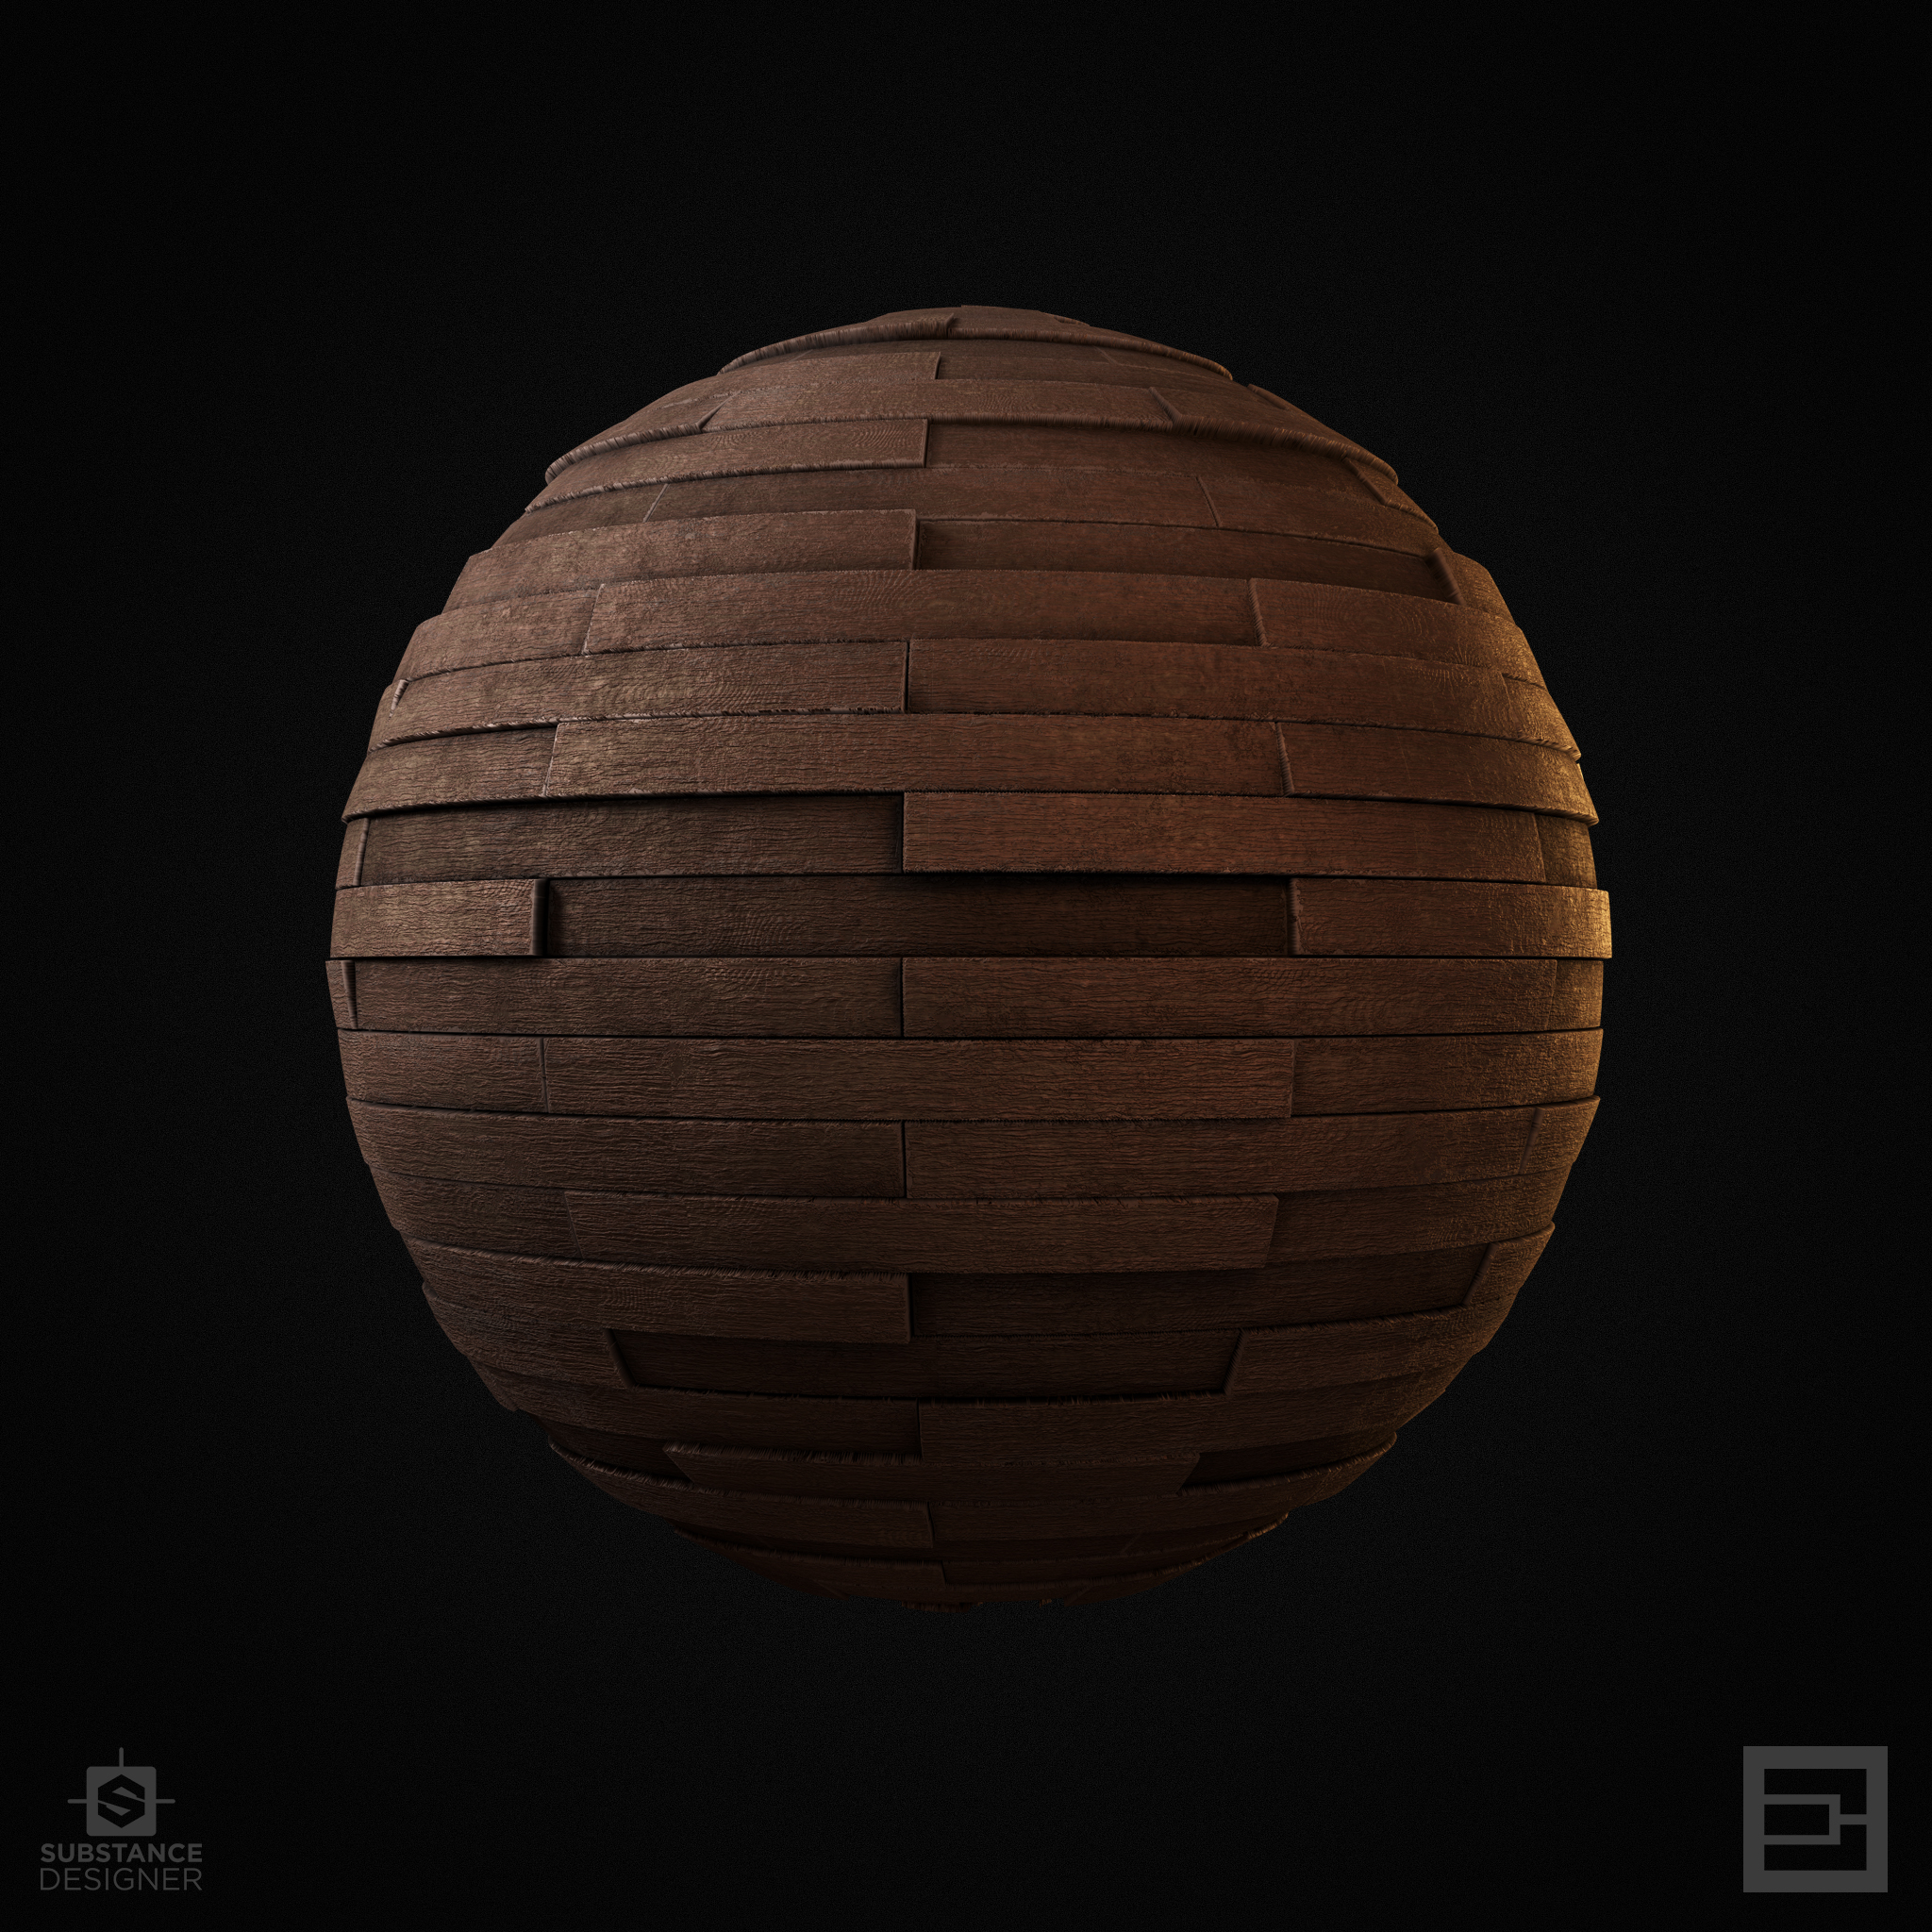 SubstanceDesigner